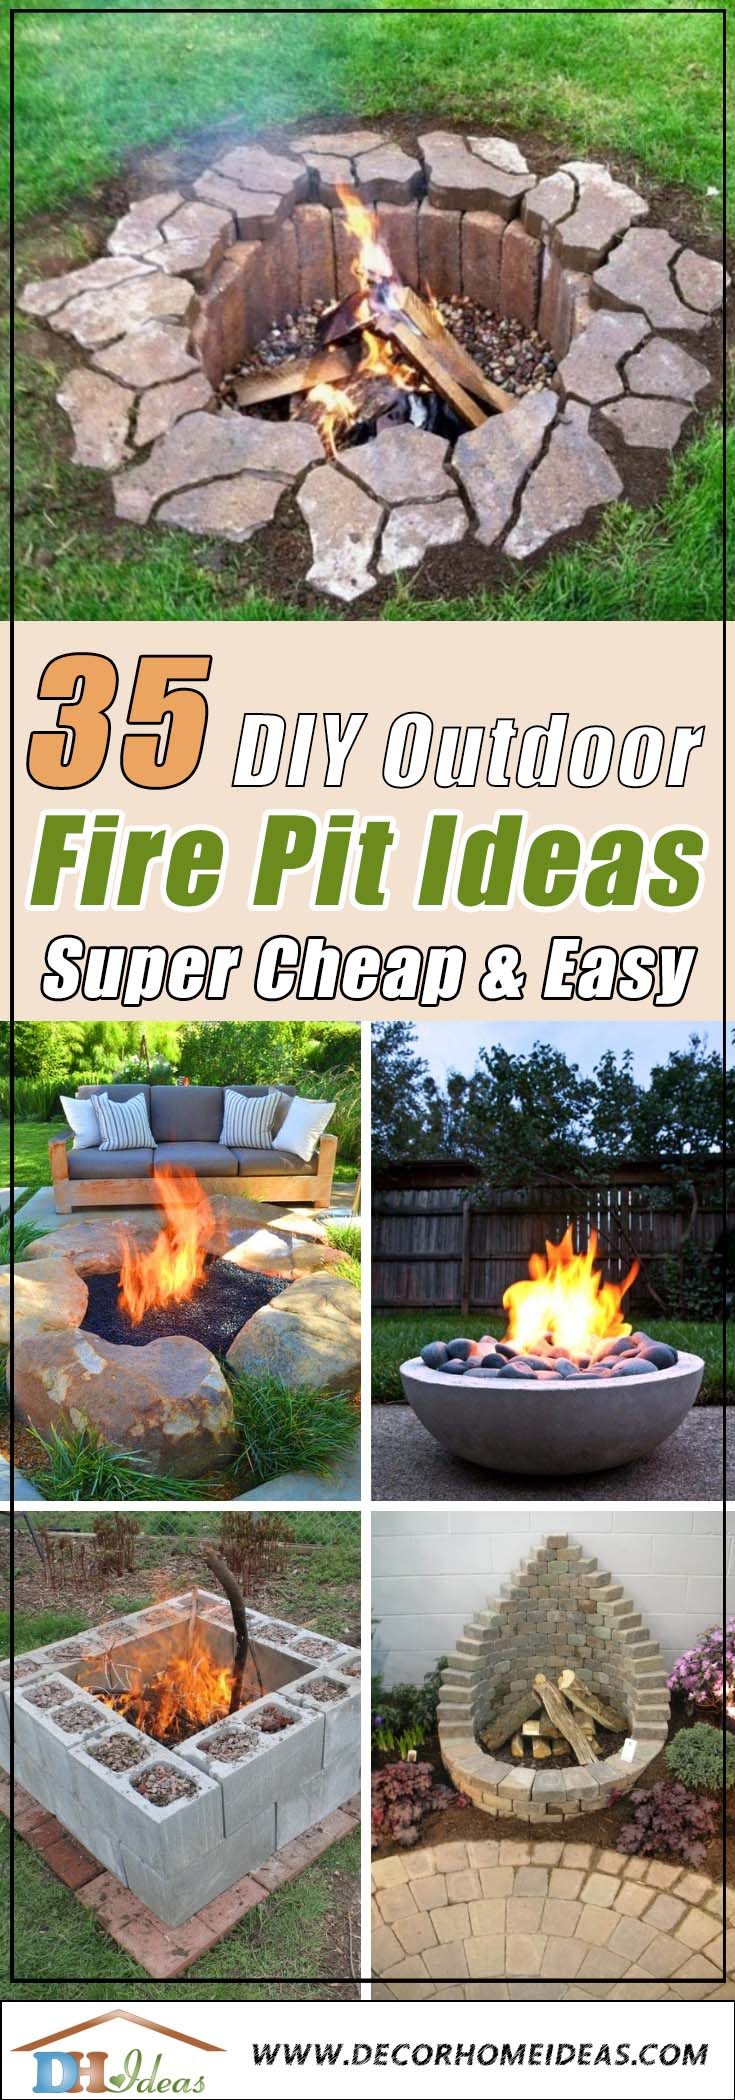 35 Best Fire Pit Ideas Super Cheap & Easy #firepit #firepitideas #diy #garden #decorhomeideas